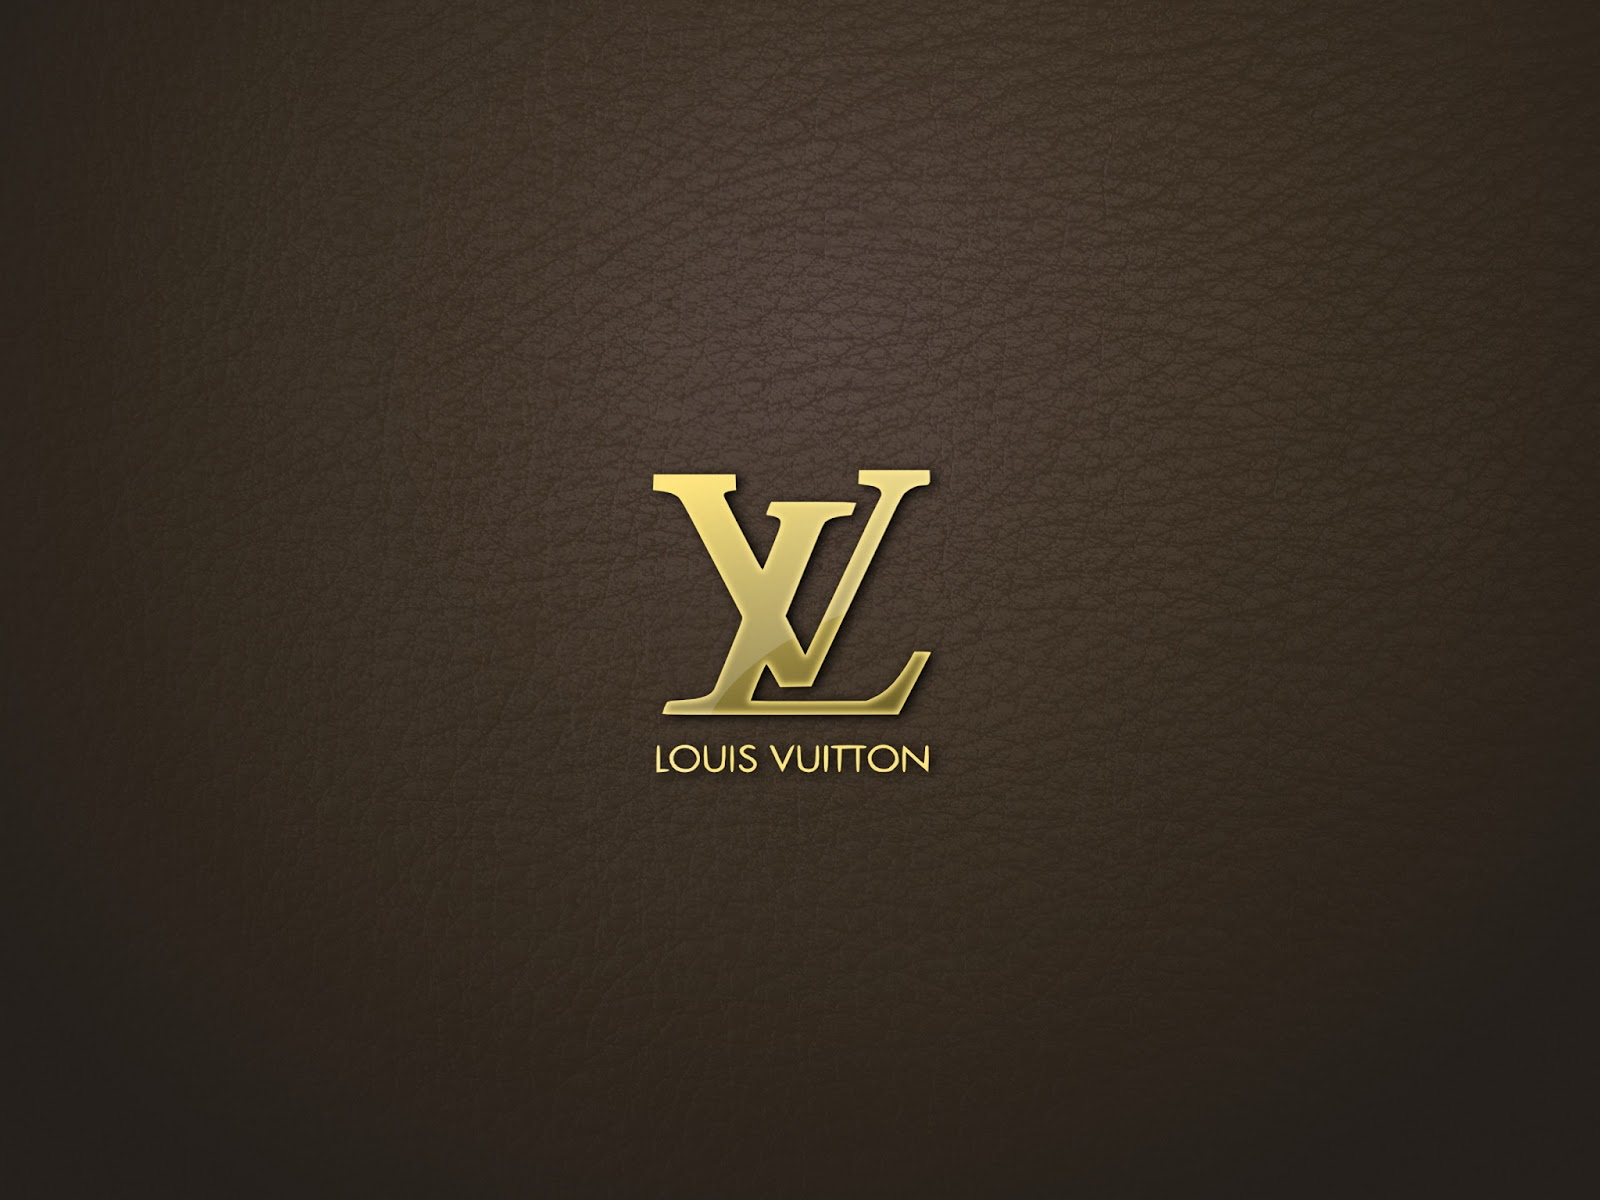 http://4.bp.blogspot.com/-HnYO8n4Kahk/UBU_paWphXI/AAAAAAAADRU/79x__J-U2zQ/s1600/Louis-Vuitton-iPad-3-Wallpapers-5.jpg